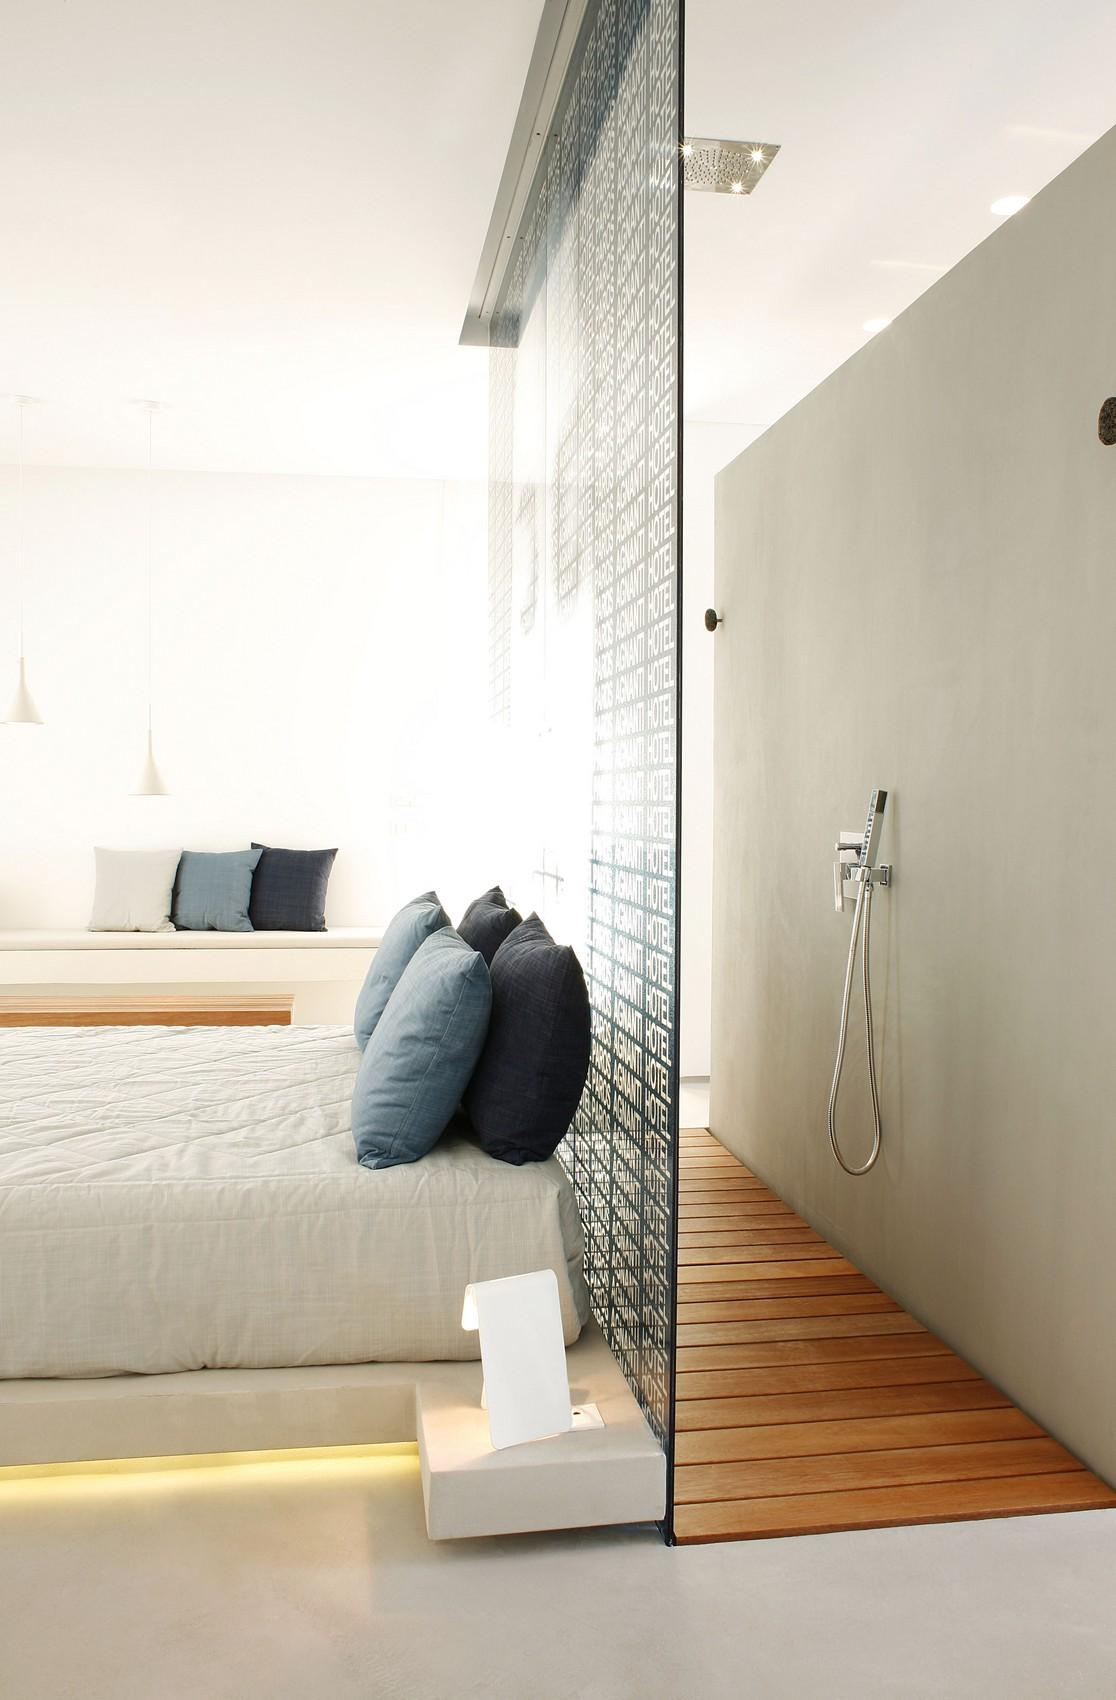 walk in shower could be placed right behind a bed